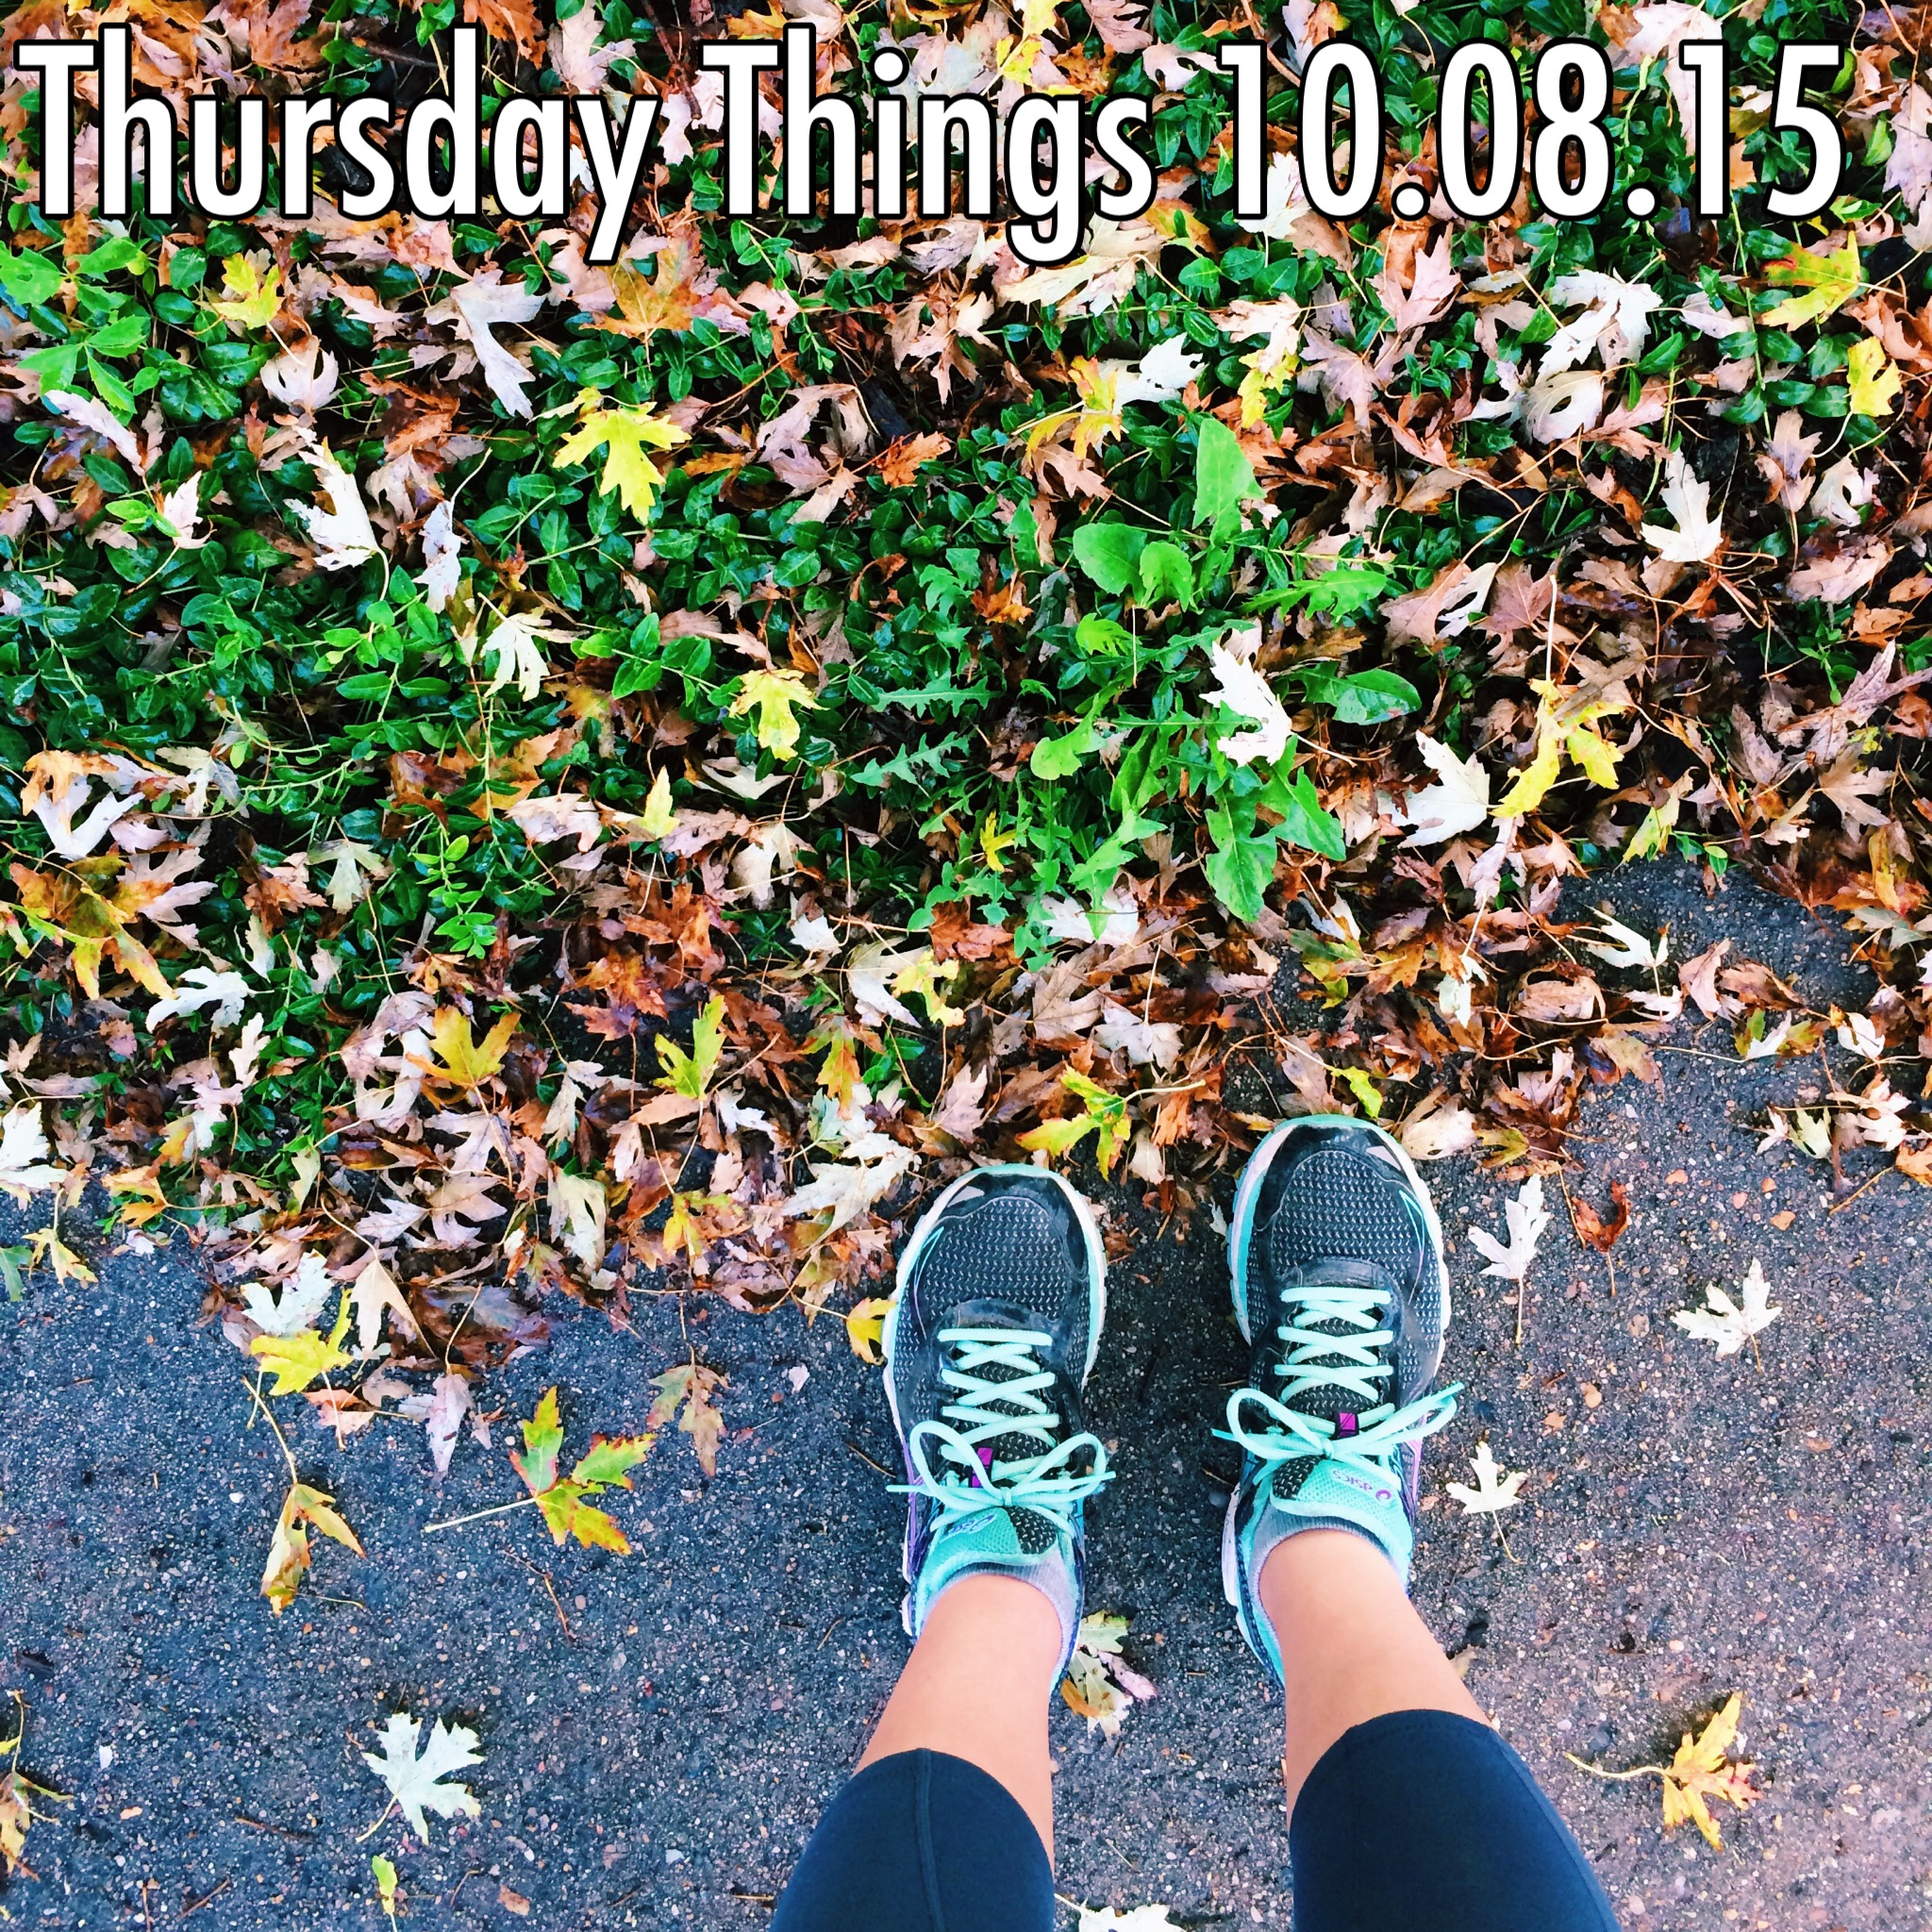 Thursday Things 10.08.15